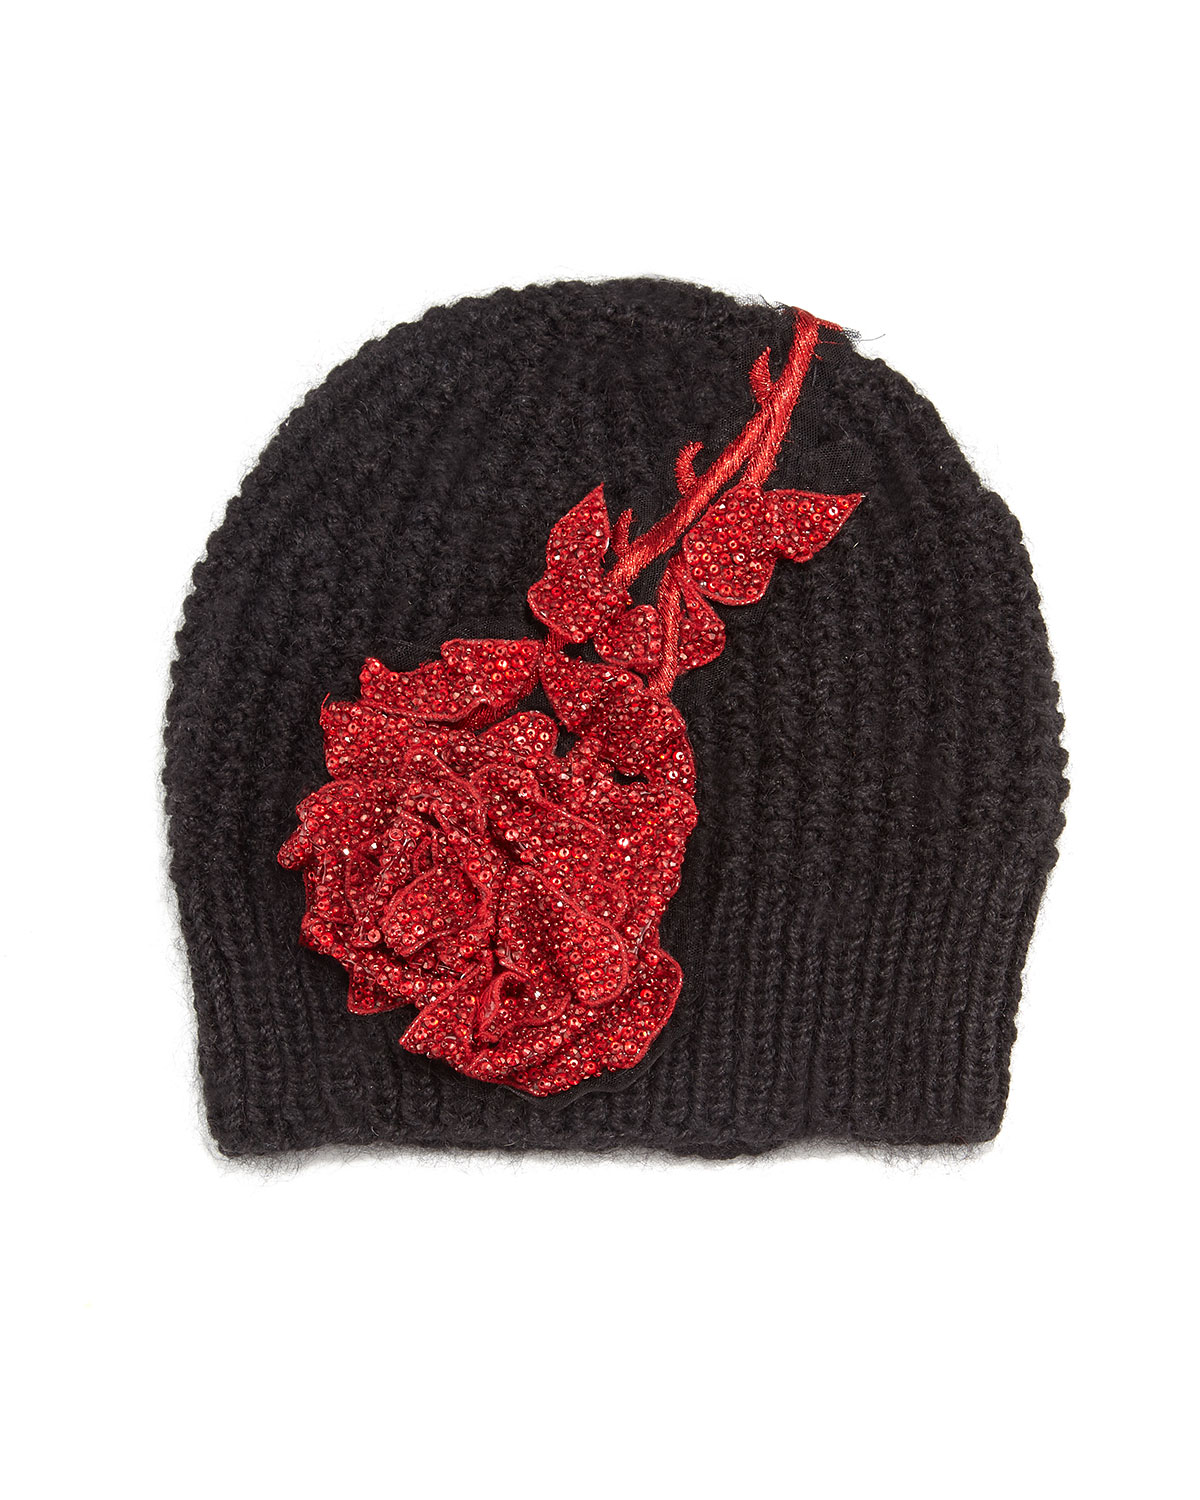 7299c4bcaa5bc Jennifer Behr Crystal Rose Knit Beanie Hat